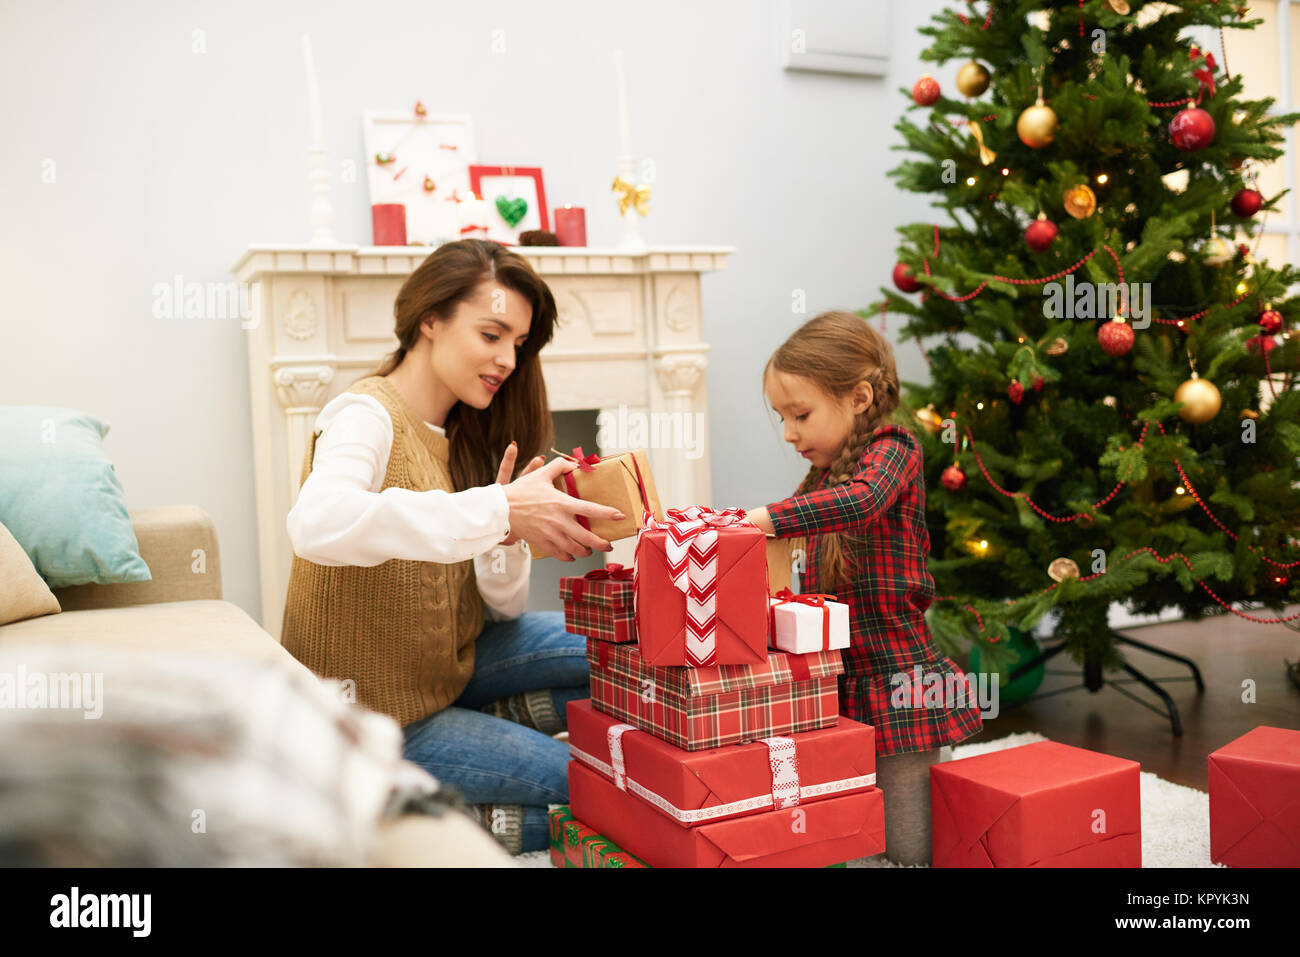 boxing day zu hause feiern stockfoto bild 169023449 alamy. Black Bedroom Furniture Sets. Home Design Ideas